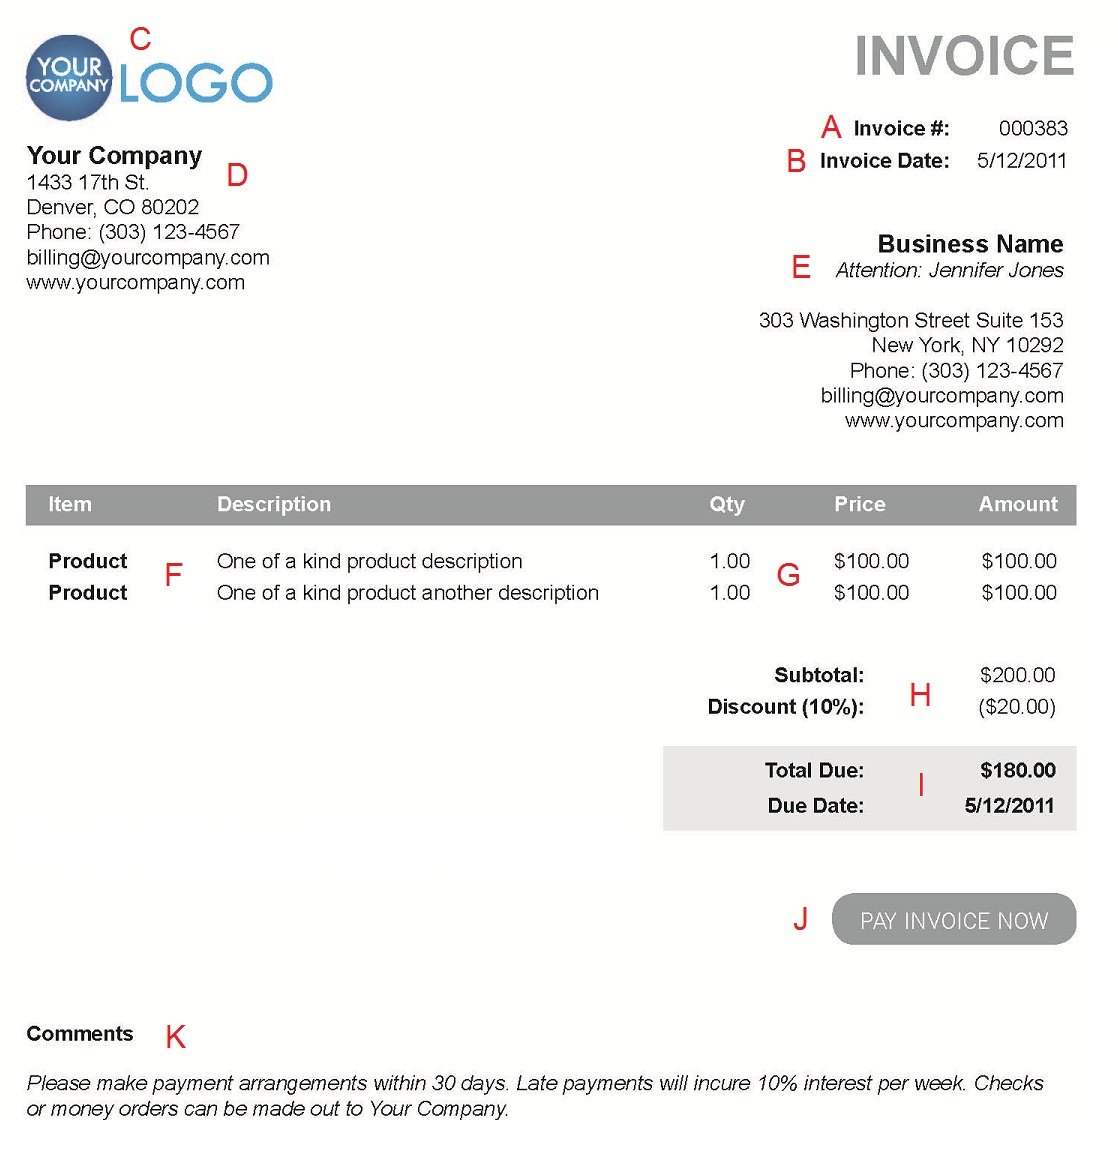 Theologygeekblogus  Personable The  Different Sections Of An Electronic Payment Invoice With Magnificent A  With Endearing Quickbooks Invoice Template Also Shipping Invoice In Addition Work Invoice Template And Paypal Invoice Fee Calculator As Well As Templates For Invoices Additionally Quickbooks Online Invoice Templates From Paysimplecom With Theologygeekblogus  Magnificent The  Different Sections Of An Electronic Payment Invoice With Endearing A  And Personable Quickbooks Invoice Template Also Shipping Invoice In Addition Work Invoice Template From Paysimplecom